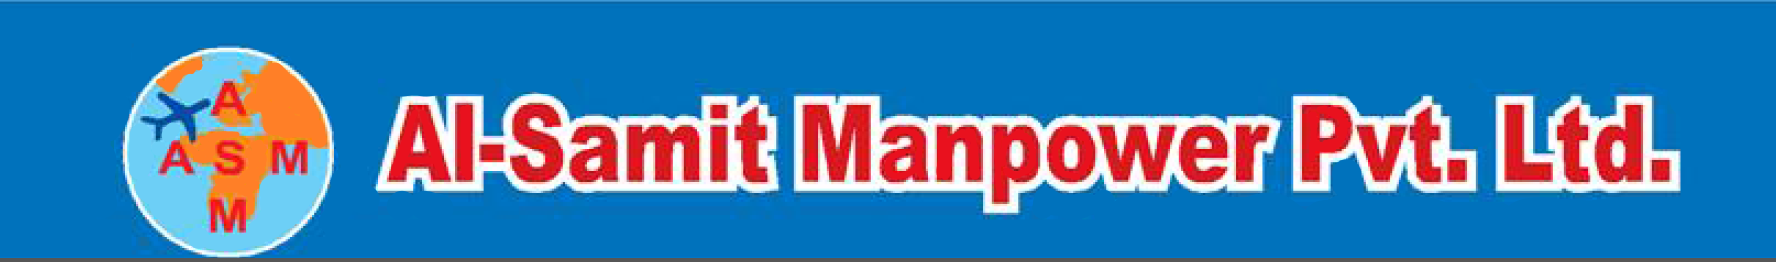 AI-Samit ManPower Pvt. Ltd.